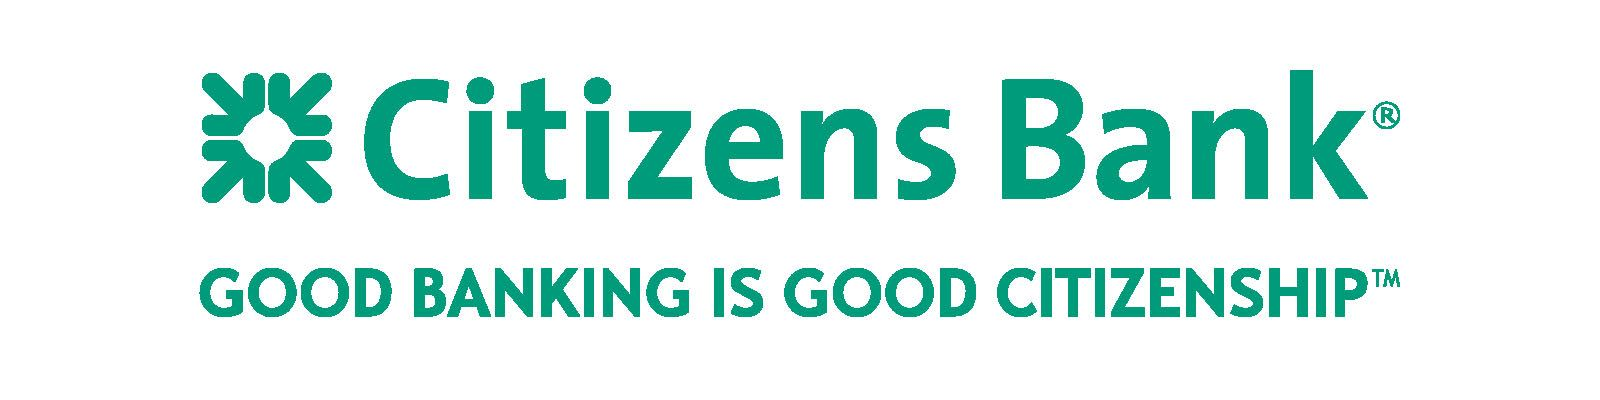 Citizens Bank Port Jervis NY Branch Business person